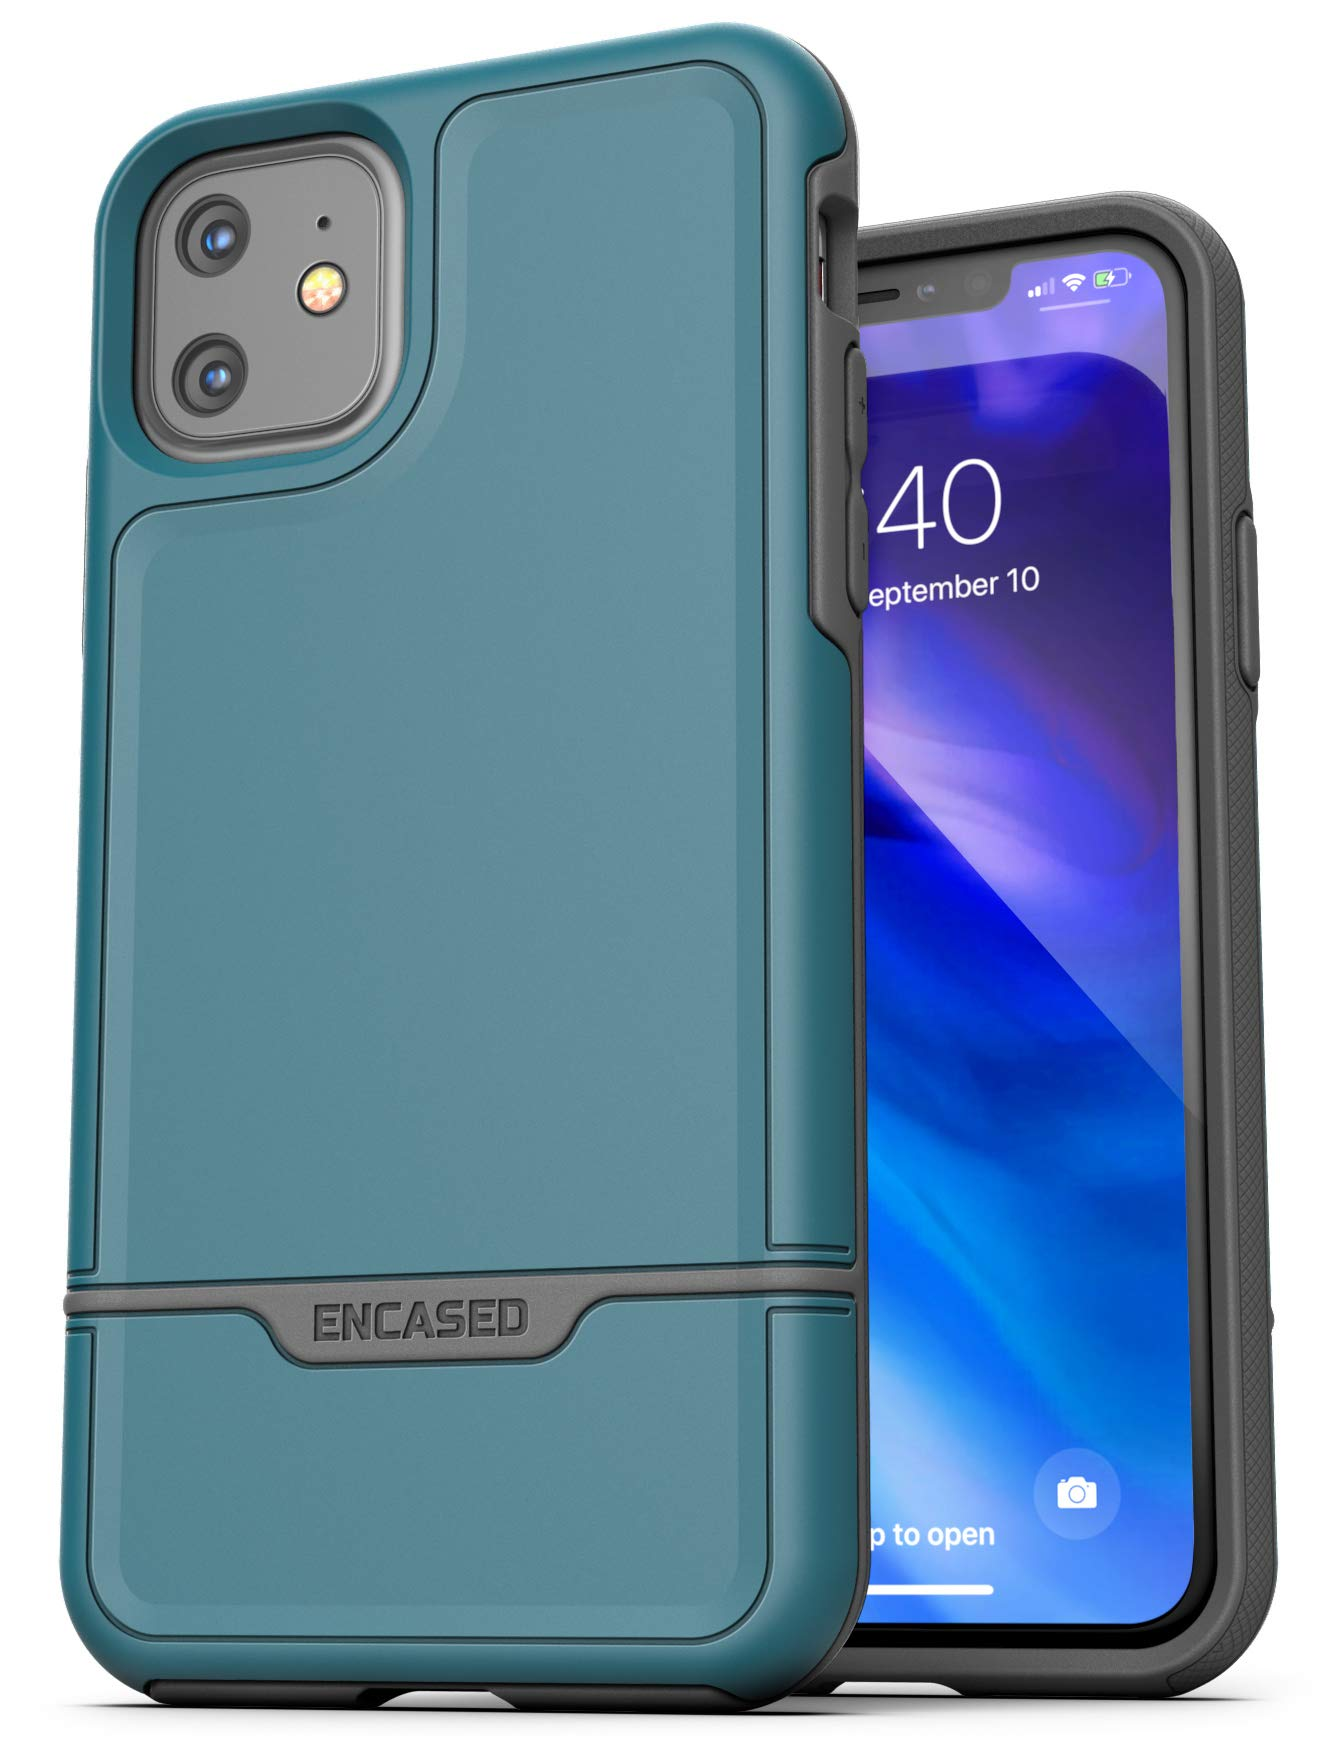 Encased Heavy Duty iPhone 11 Protective Case (2019 Rebel Armor) Military Grade Full Body Rugged Cover (Turquoise Blue)